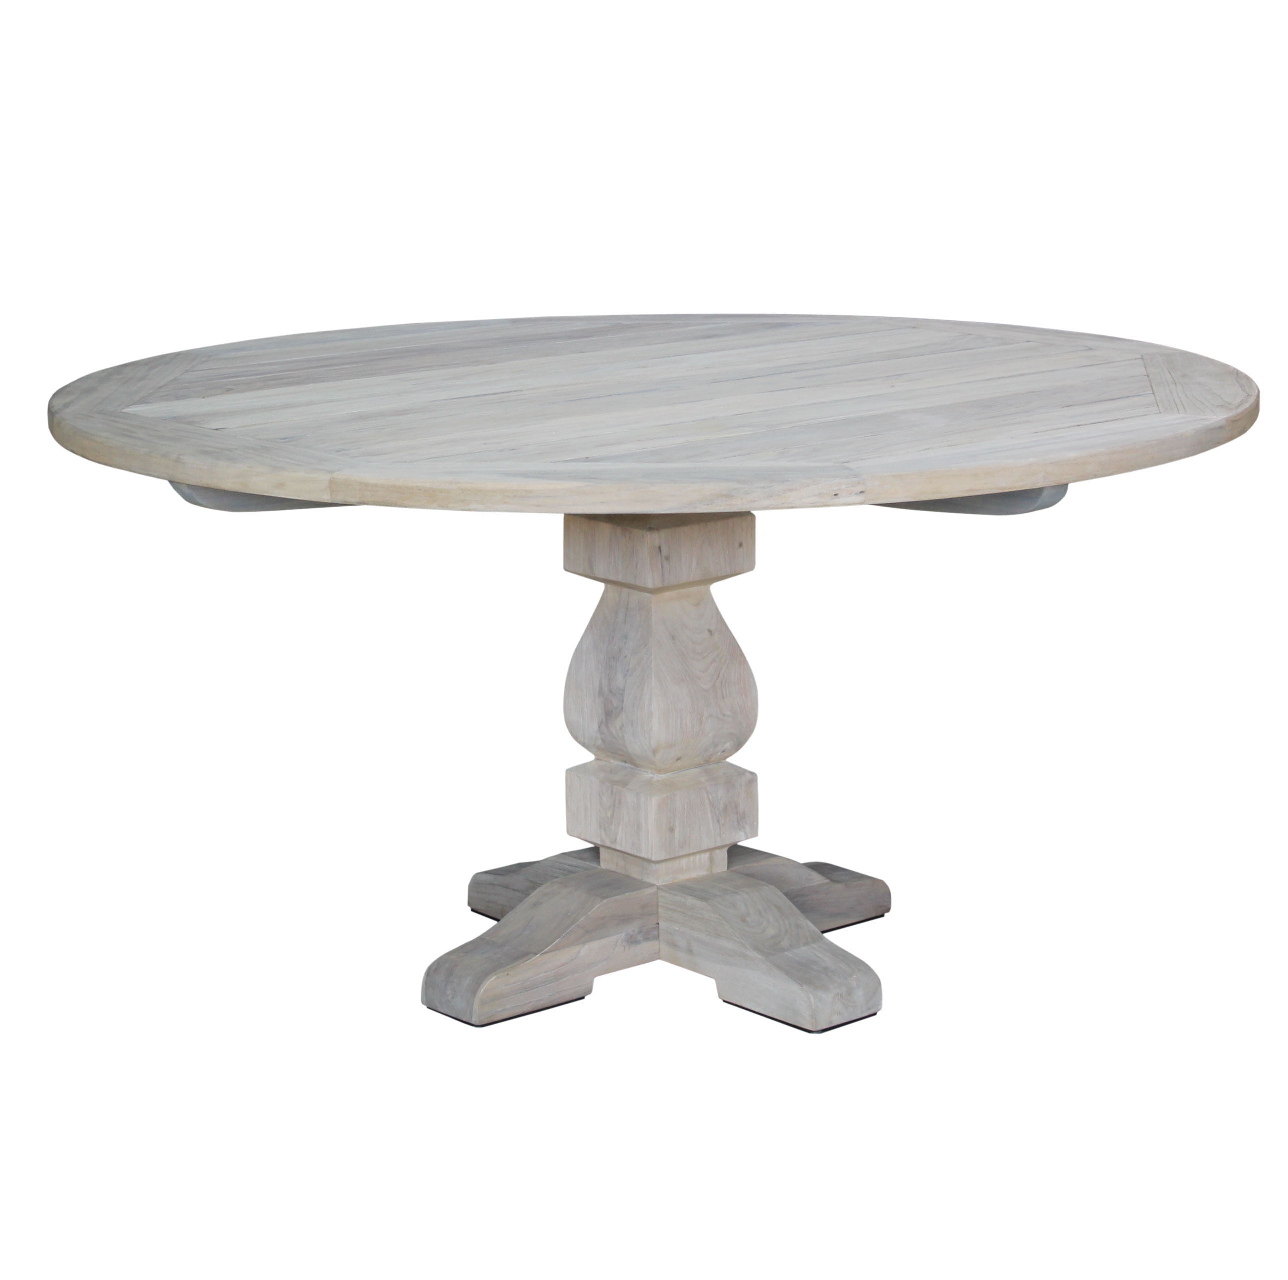 French Outdoor Round Dining Table 1500 Greenslades Furniture